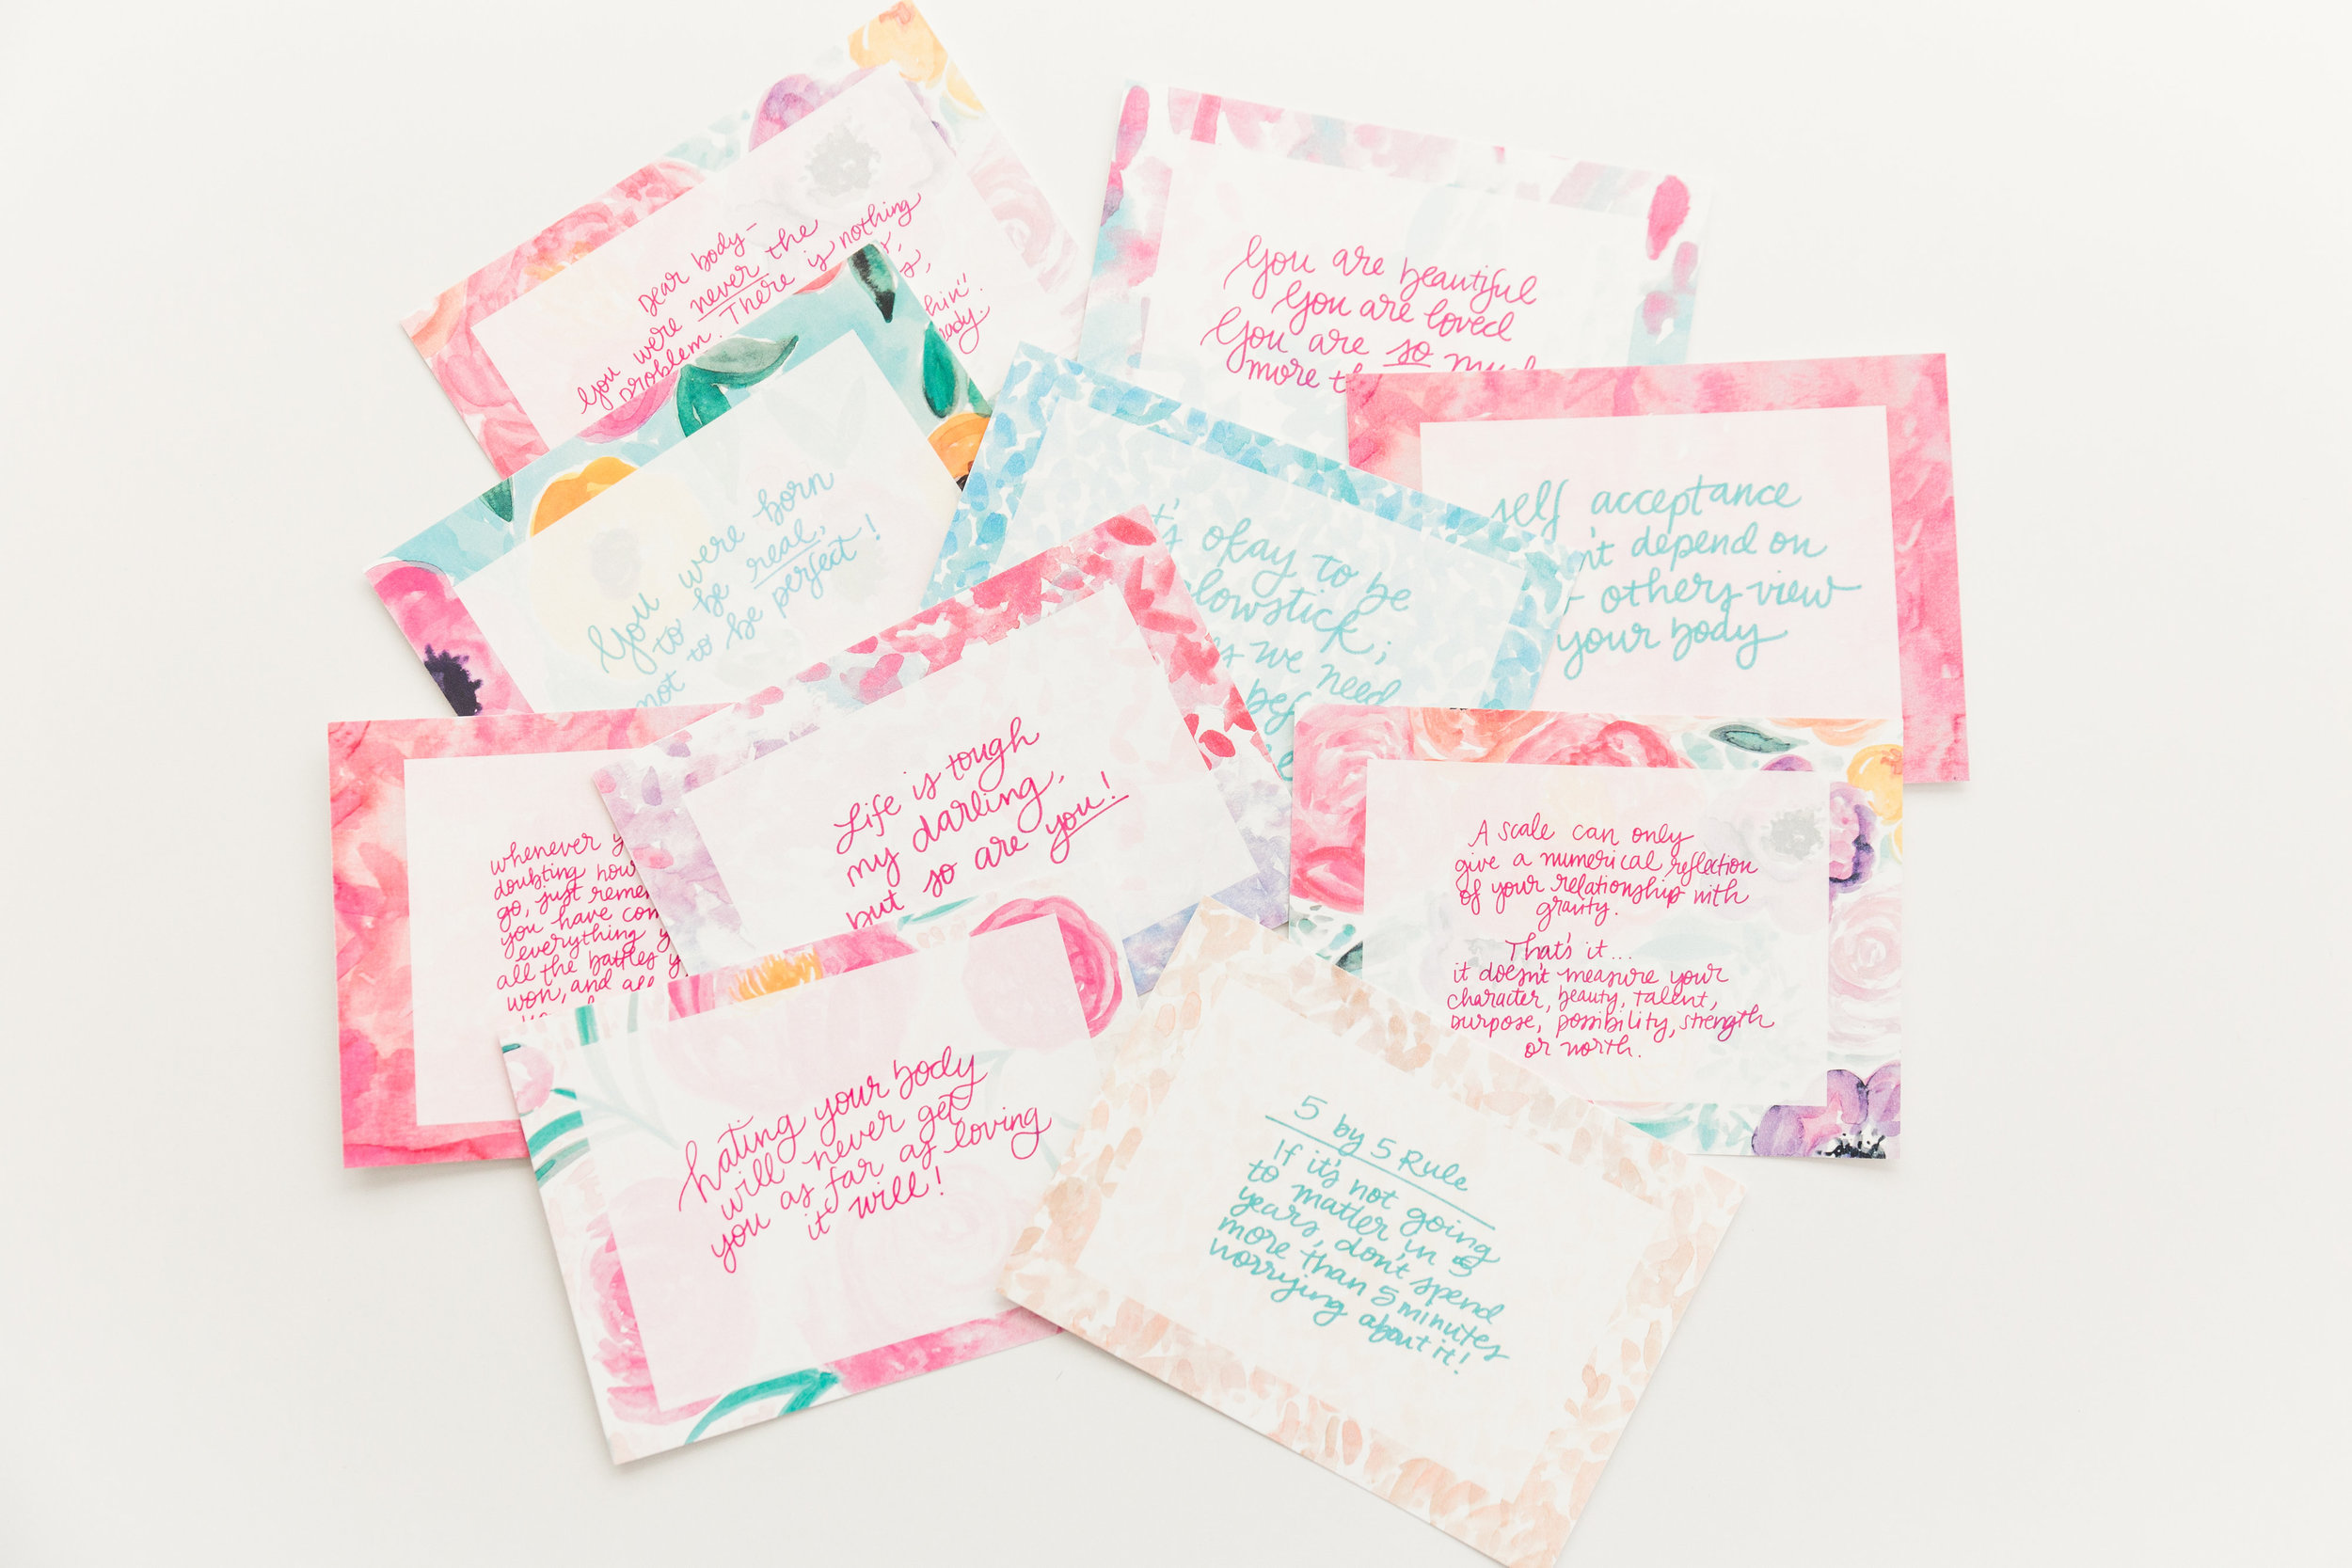 My Body is Enough Project Cards by Rachel Tenny